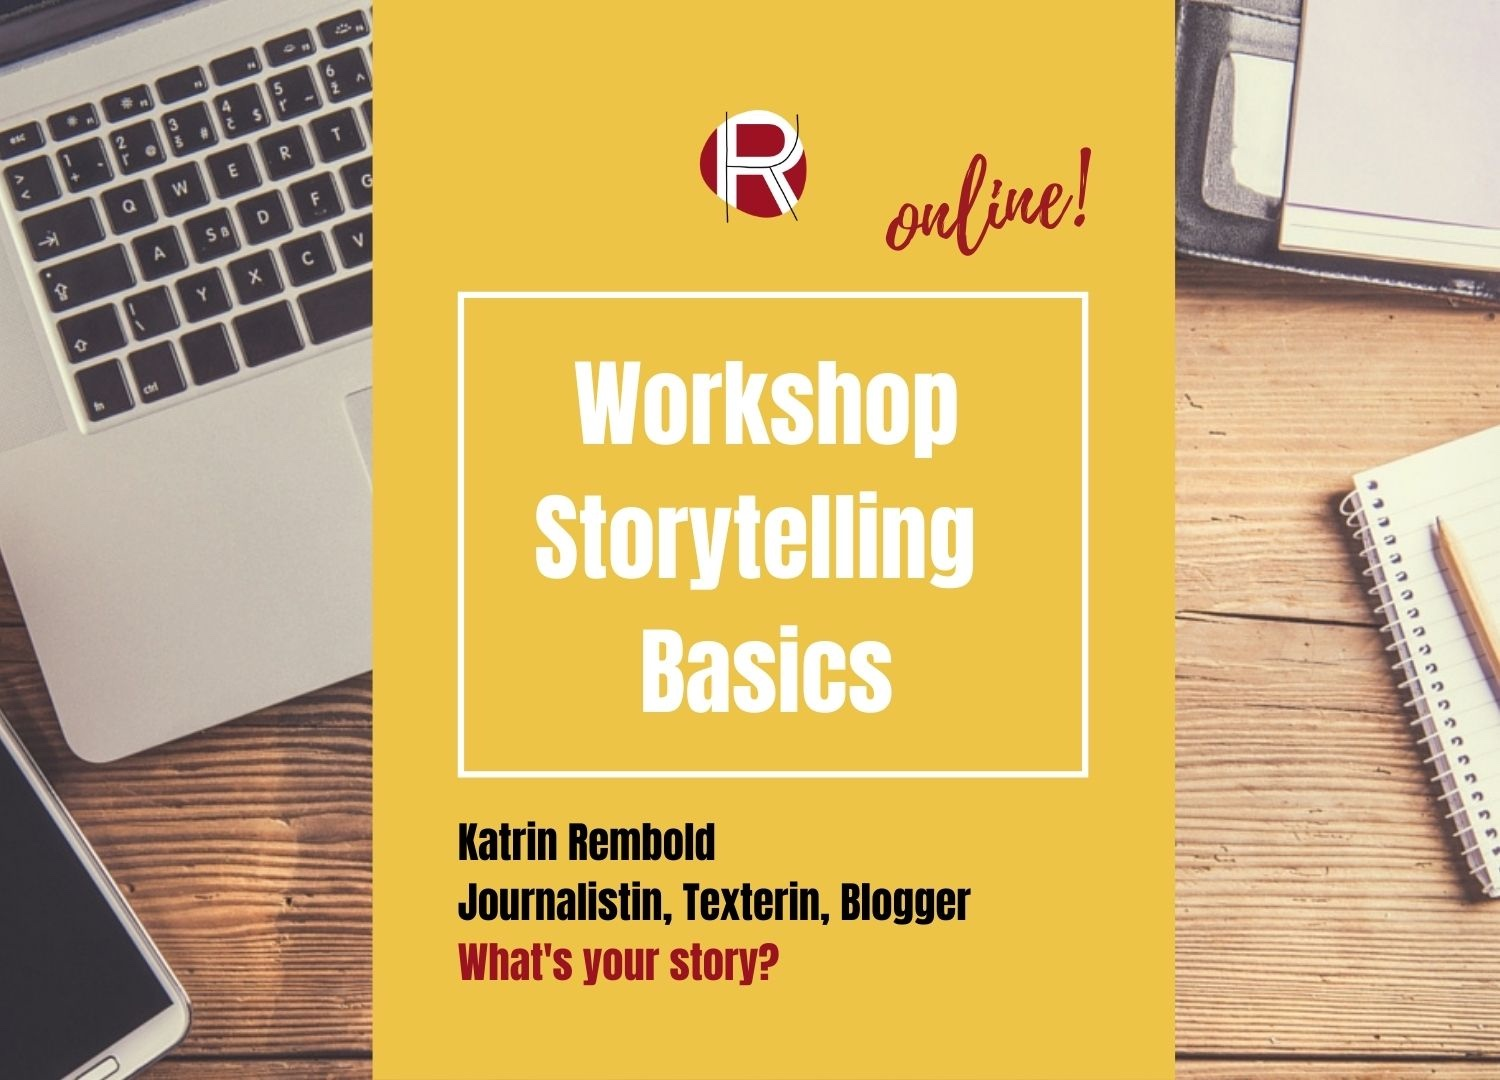 Katrin Rembold, Journalistin & Texterin. Online Workshop Storytelling Basics.